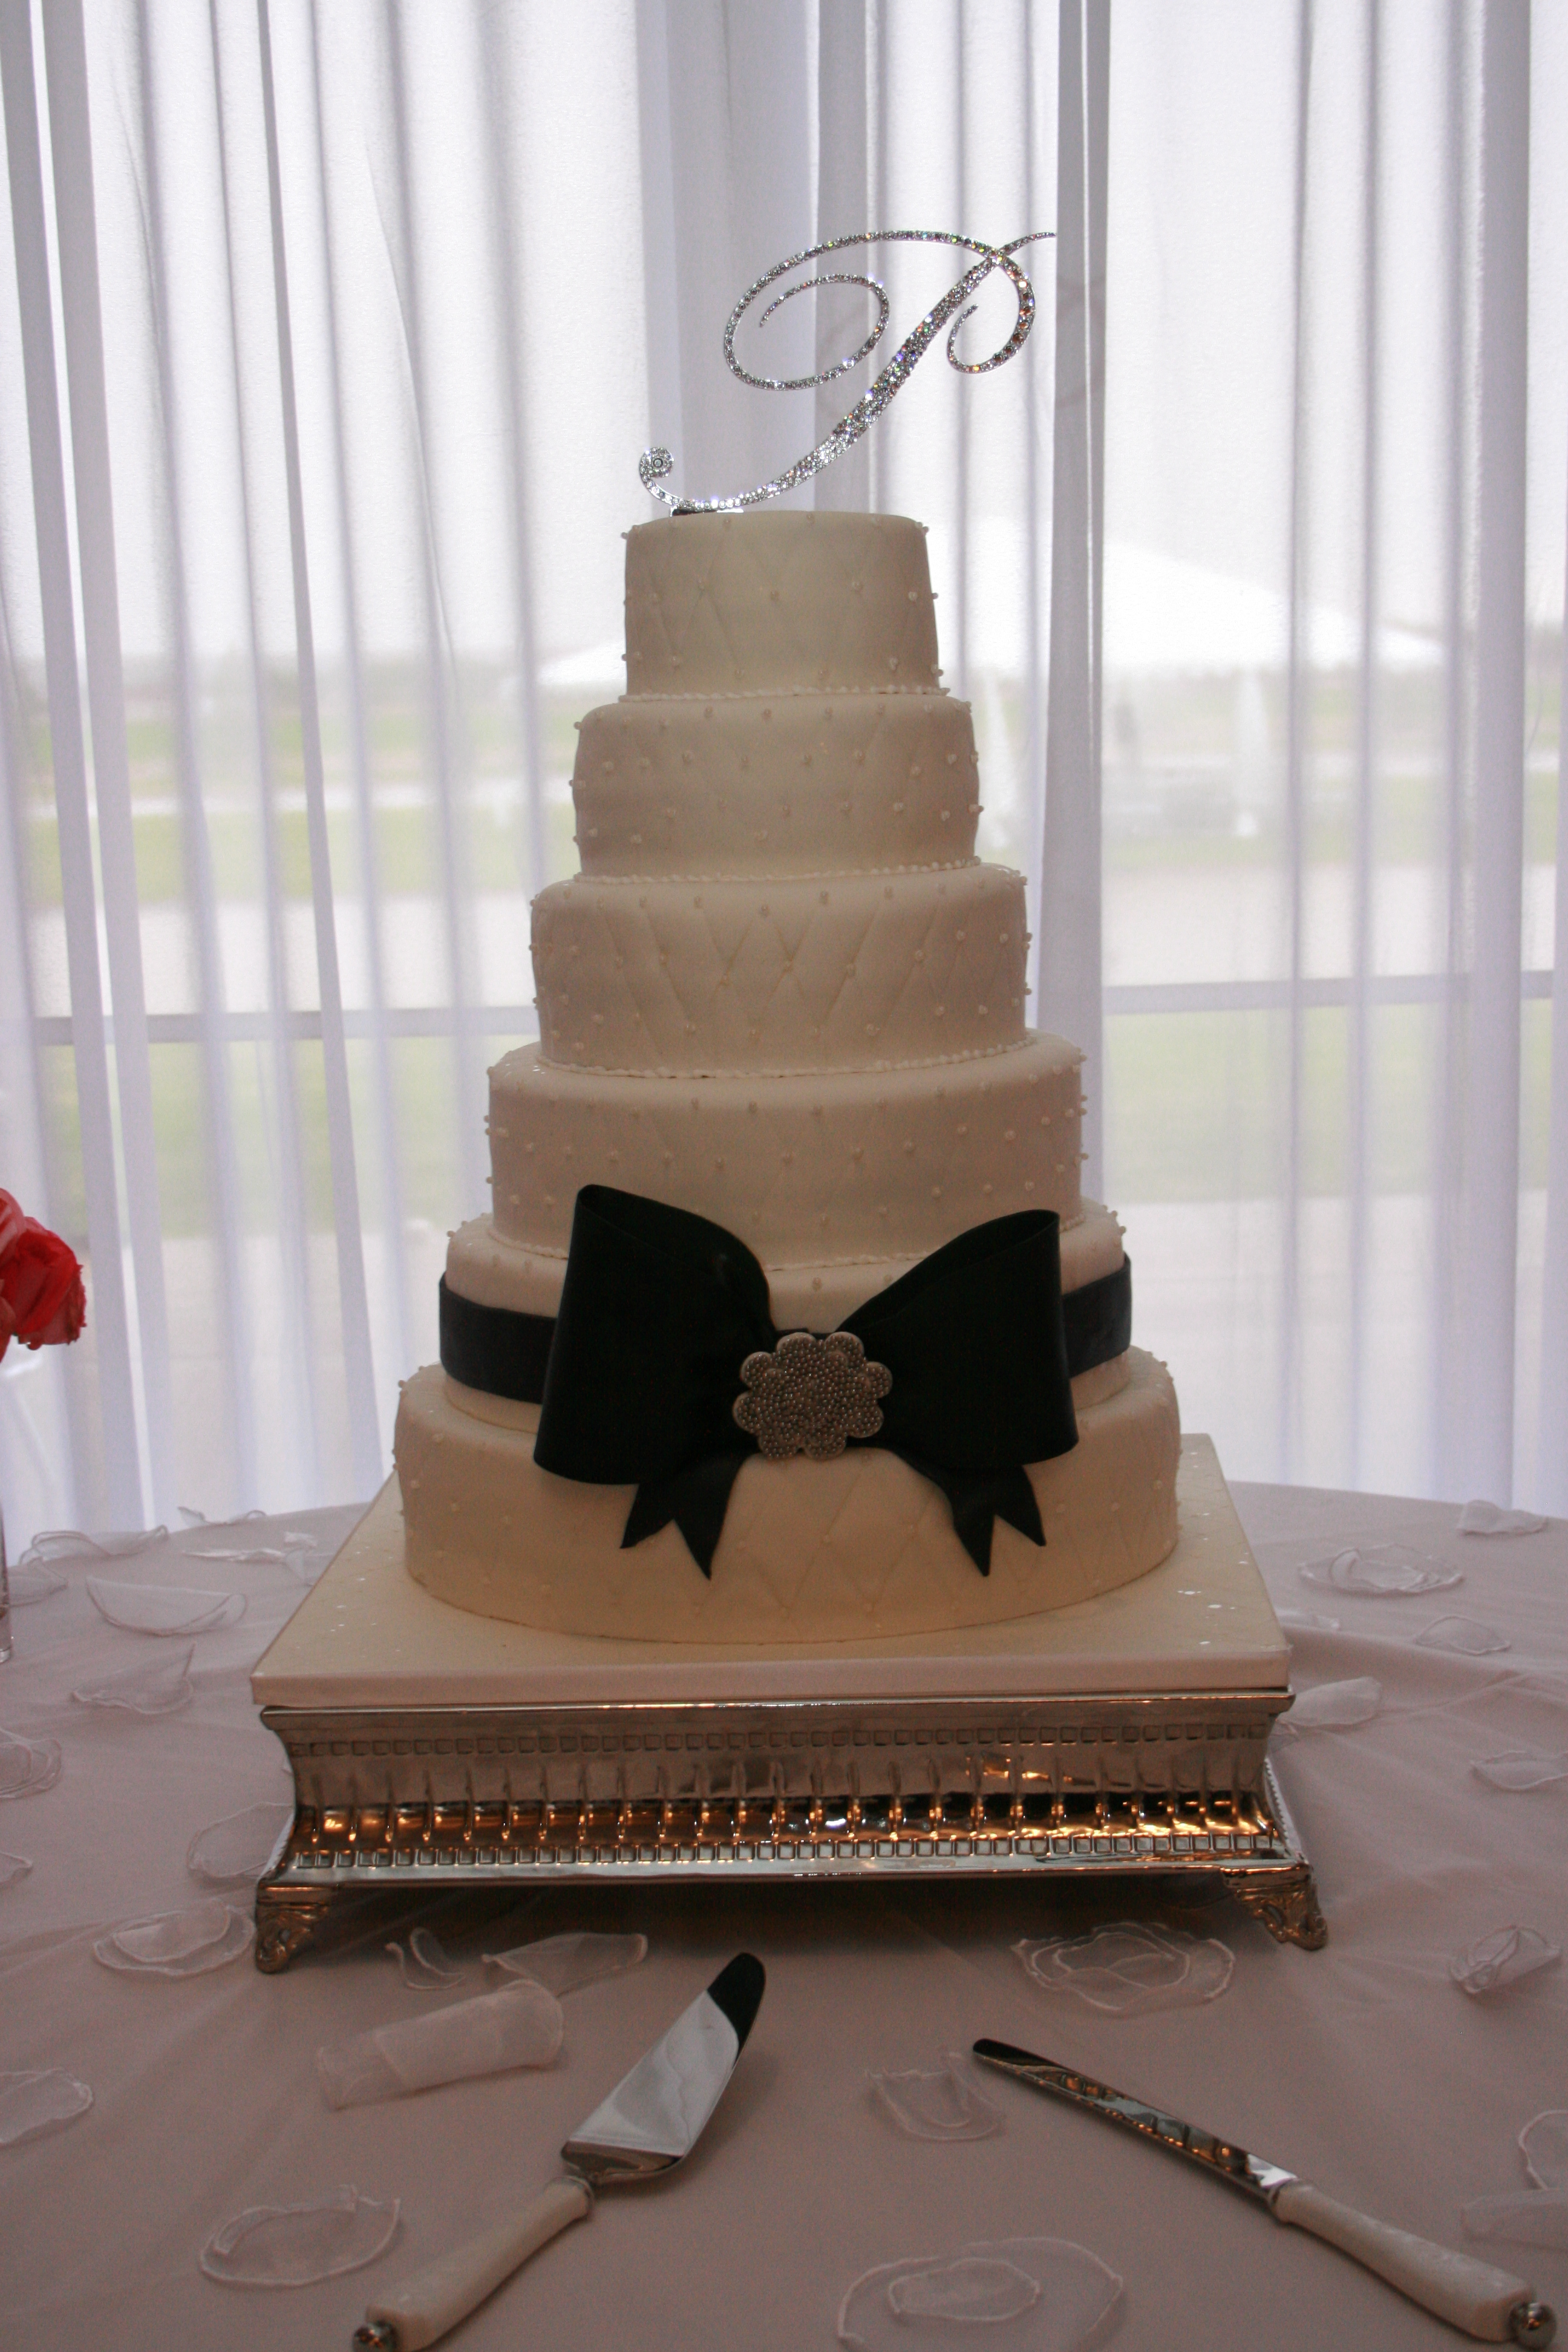 Reception, Flowers & Decor, Cakes, white, black, silver, cake, And